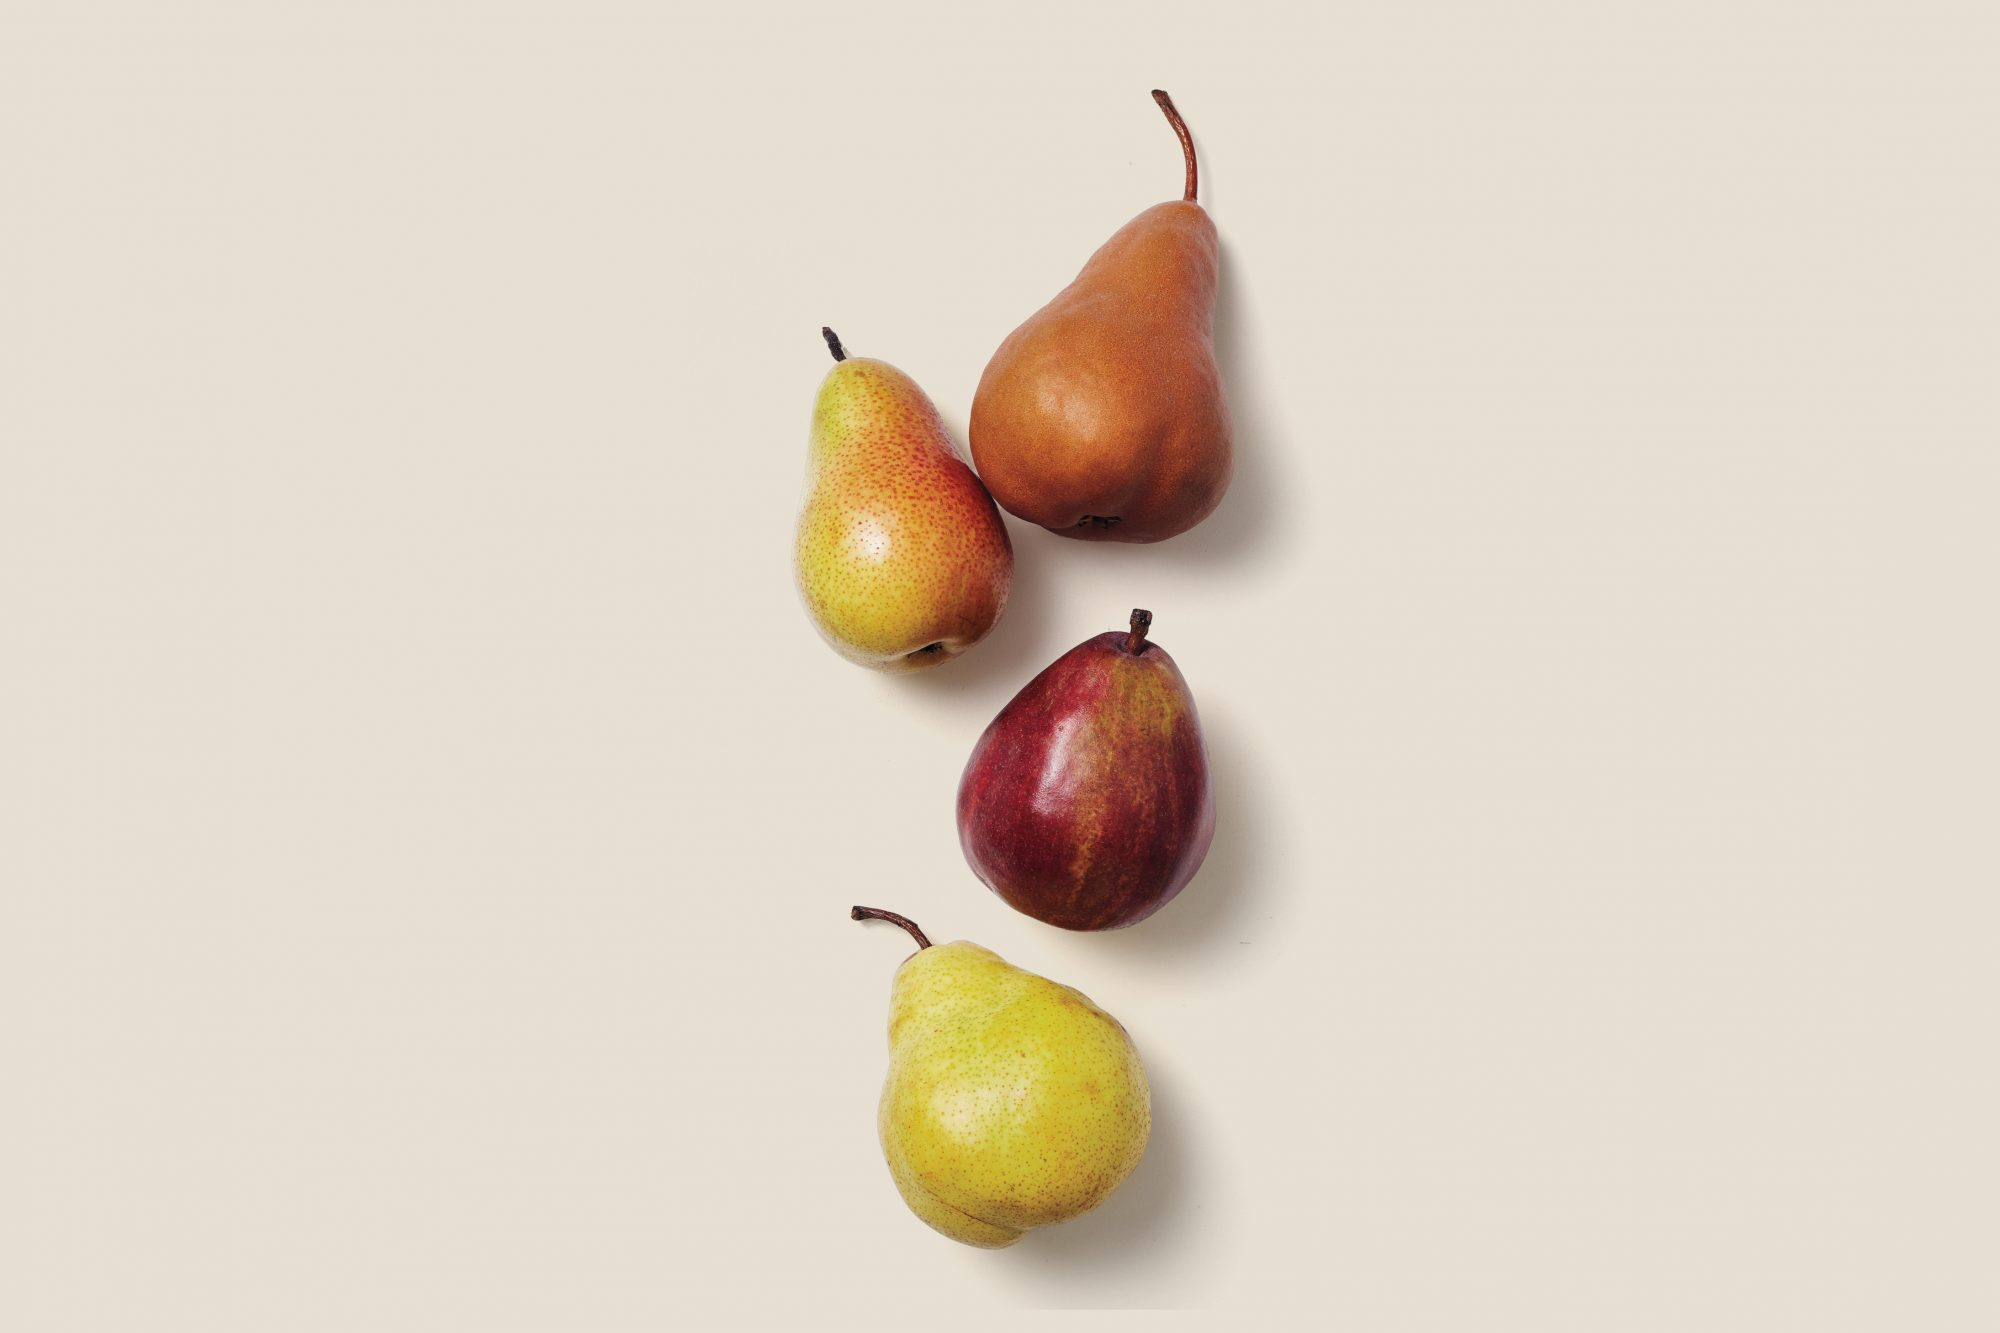 variety of pears on surface